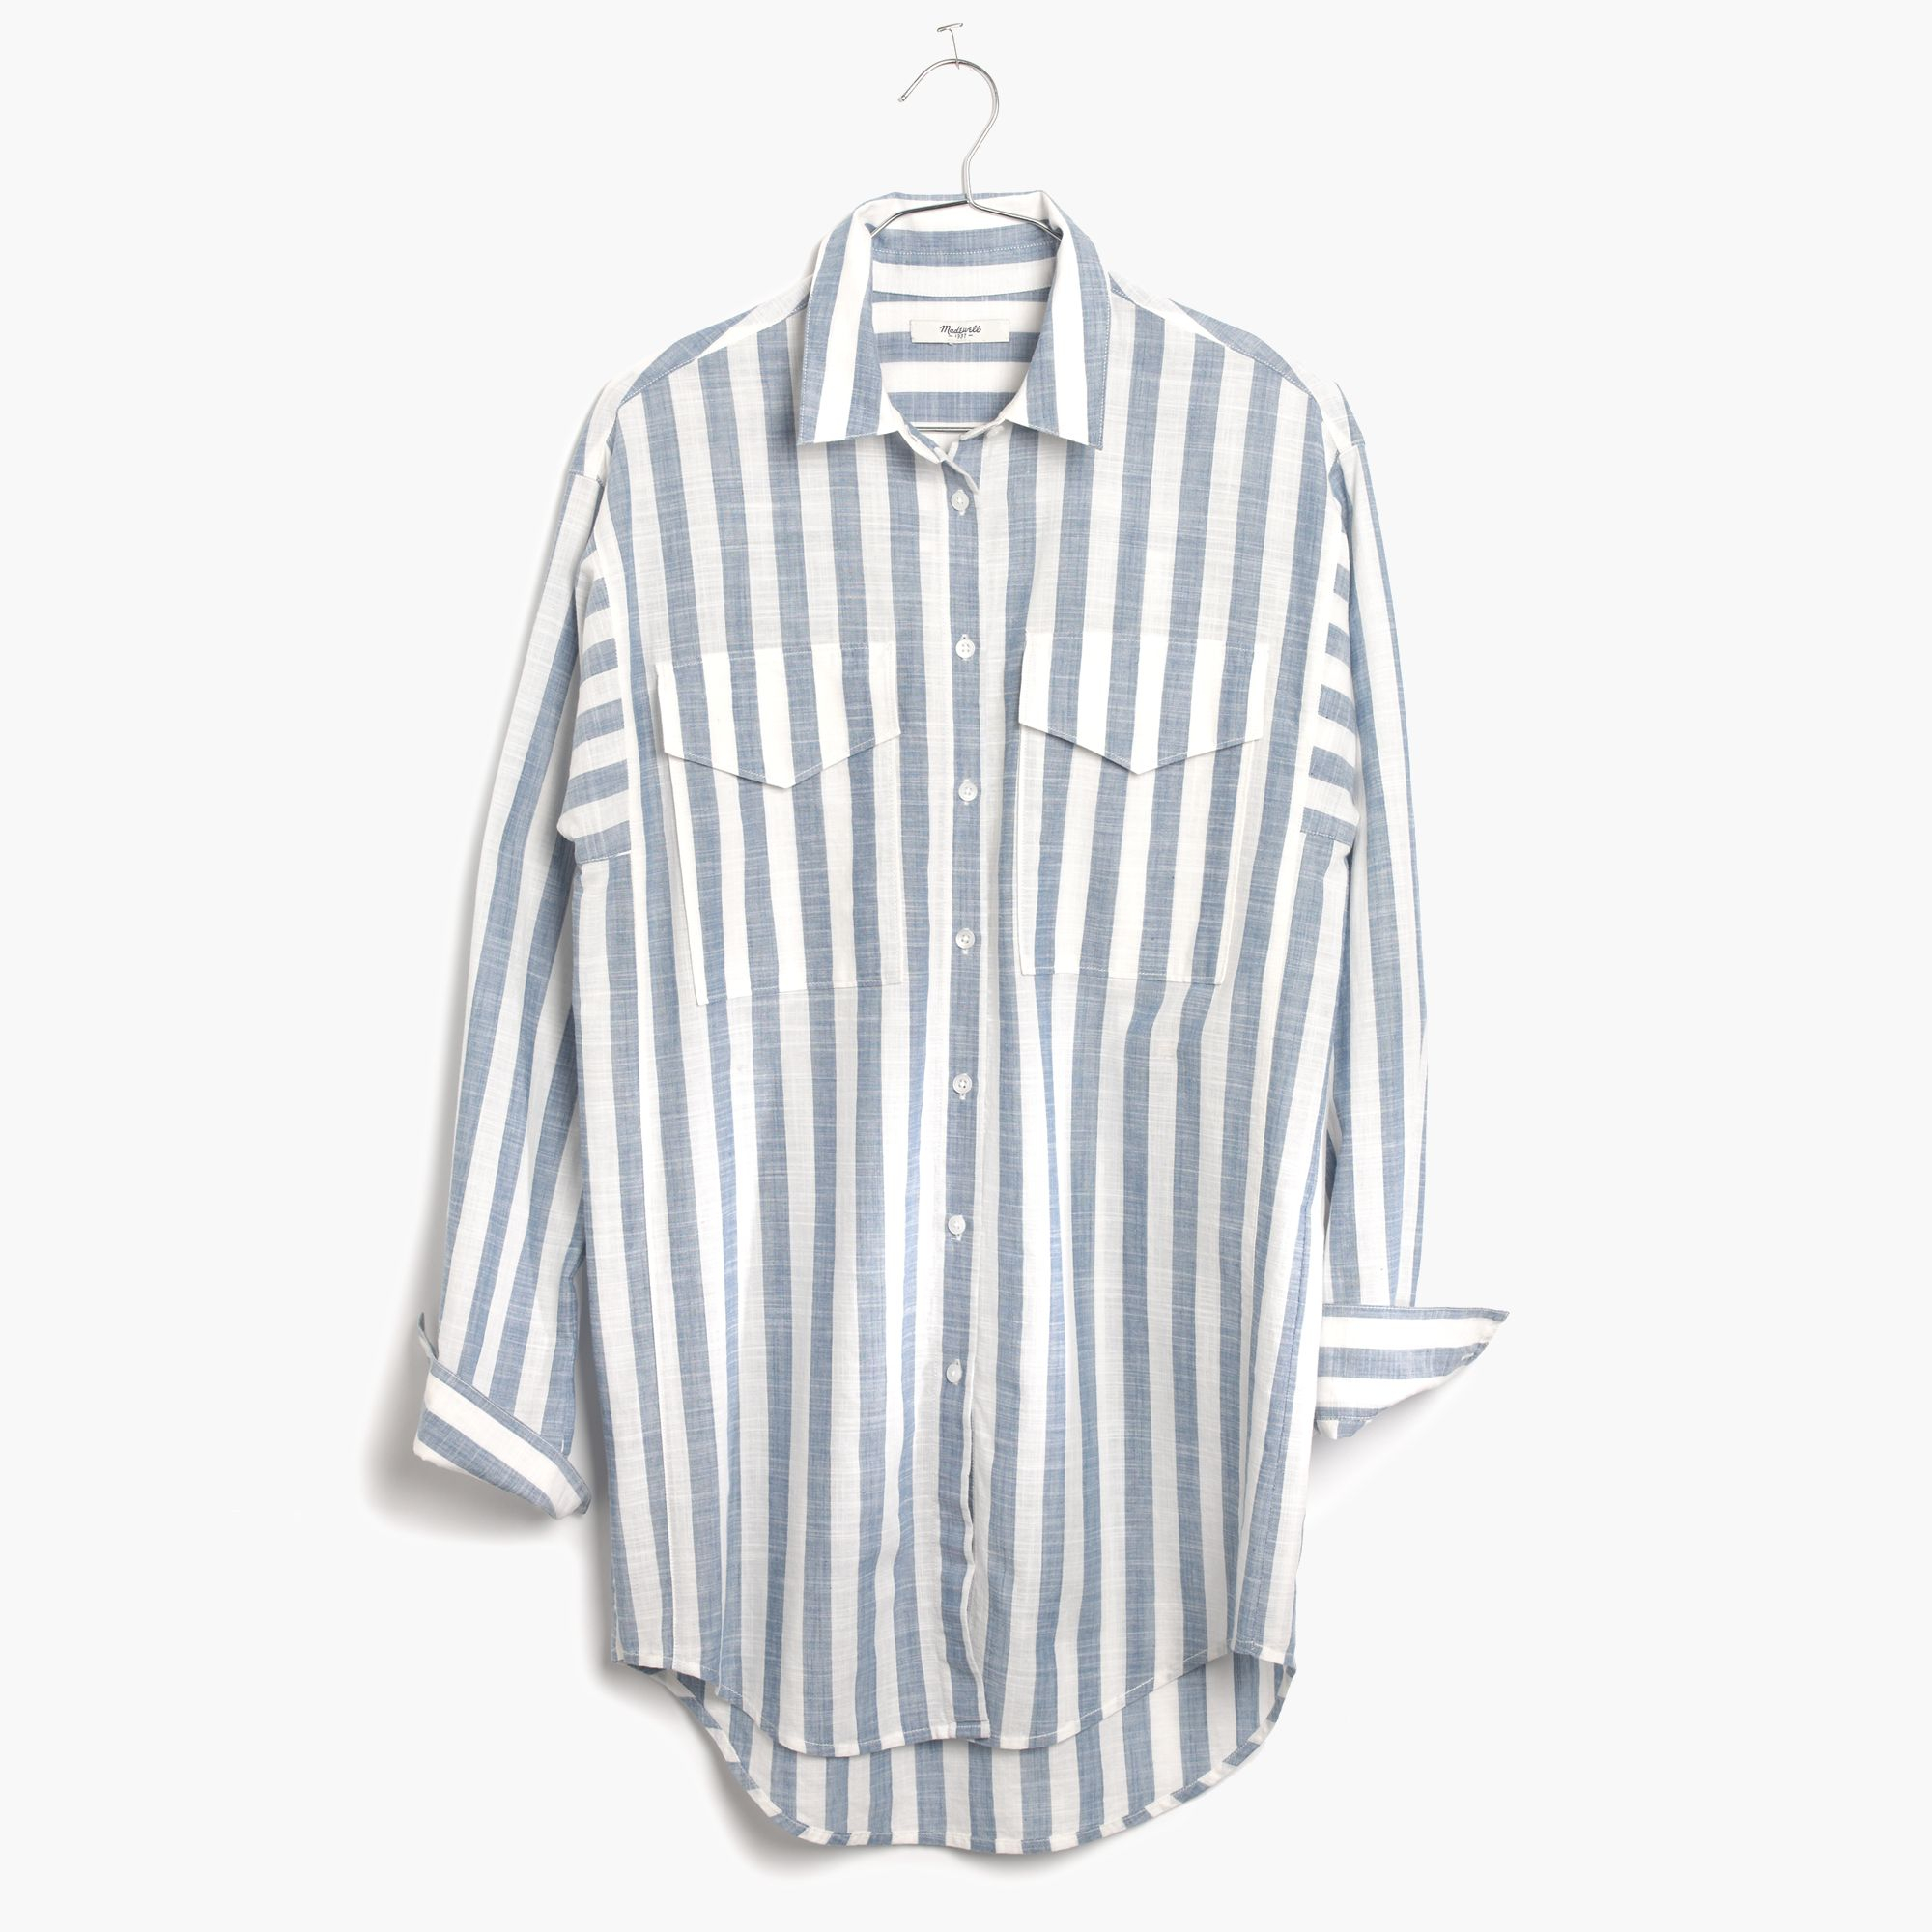 Madewell Oversized Button Down Shirt In Major Stripe In